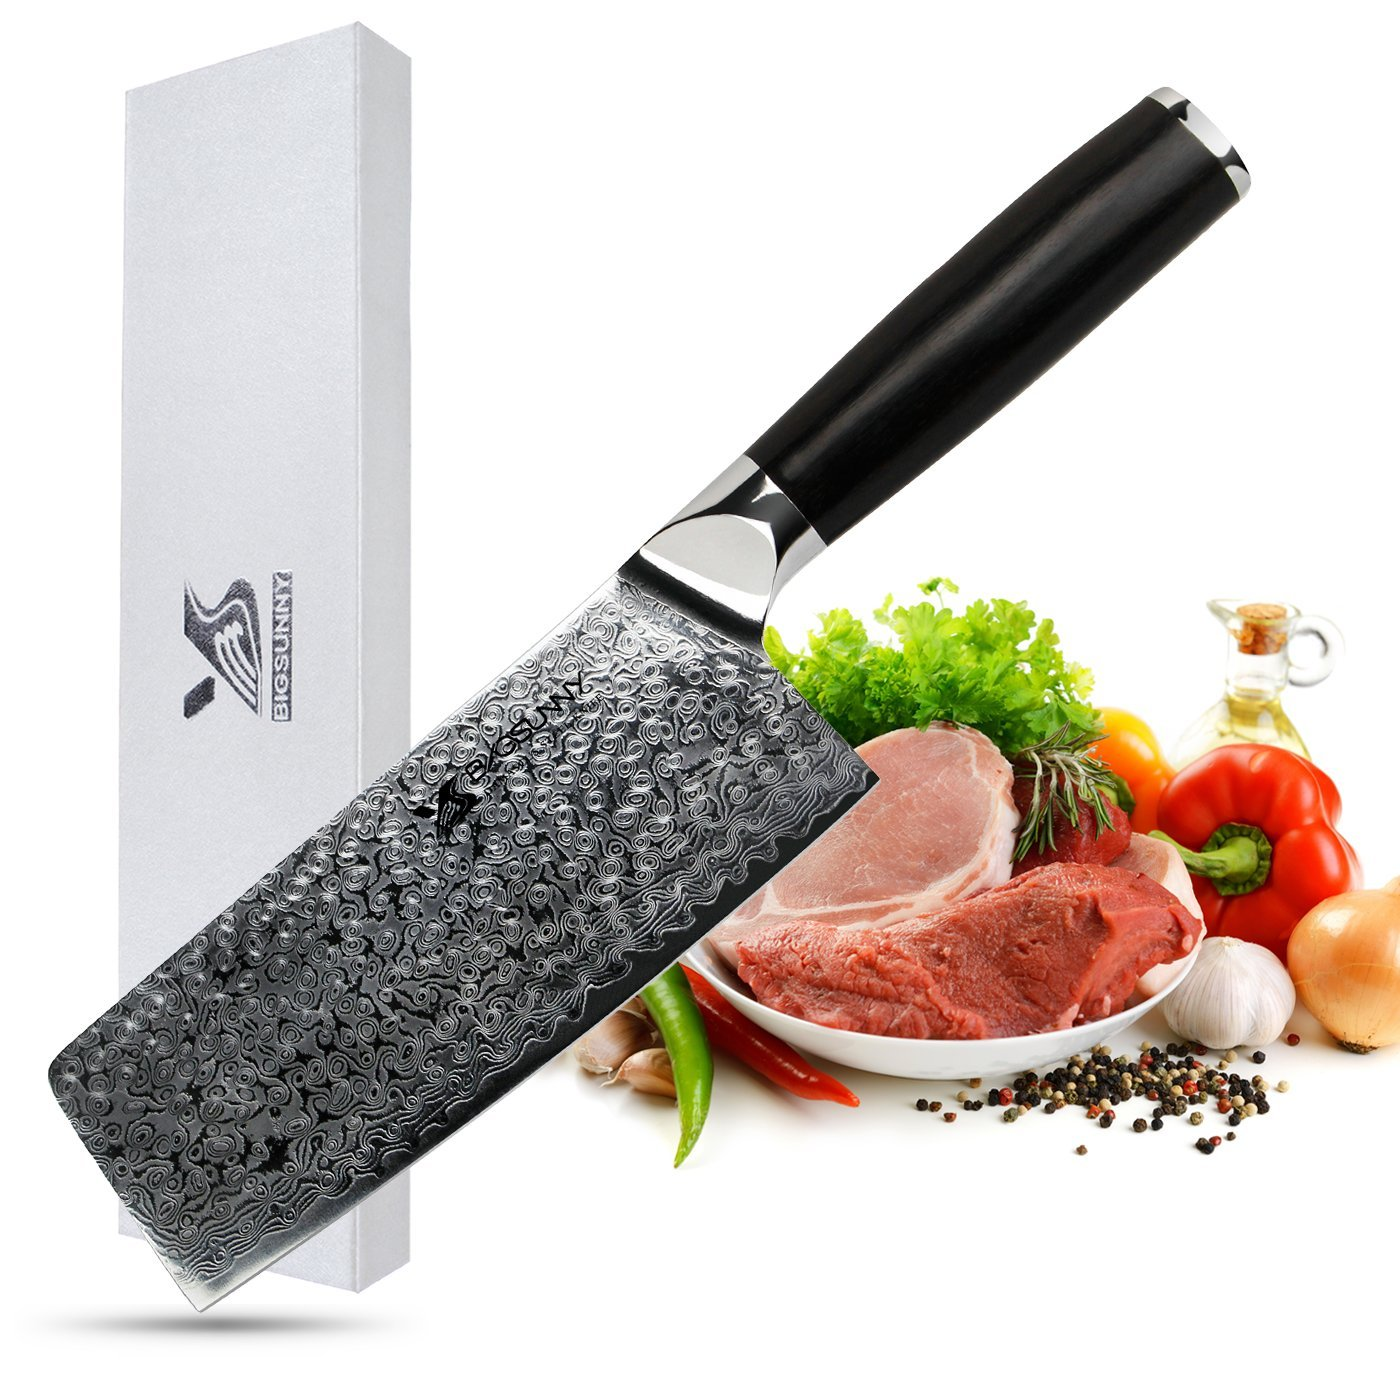 MSY BIGSUNNY 6.6 inch Butcher Knife 67 Layers Damascus Steel Slicing knife Nakiri Knife Chinese Cleaver with Ebony Handle by MSY BIGSUNNY